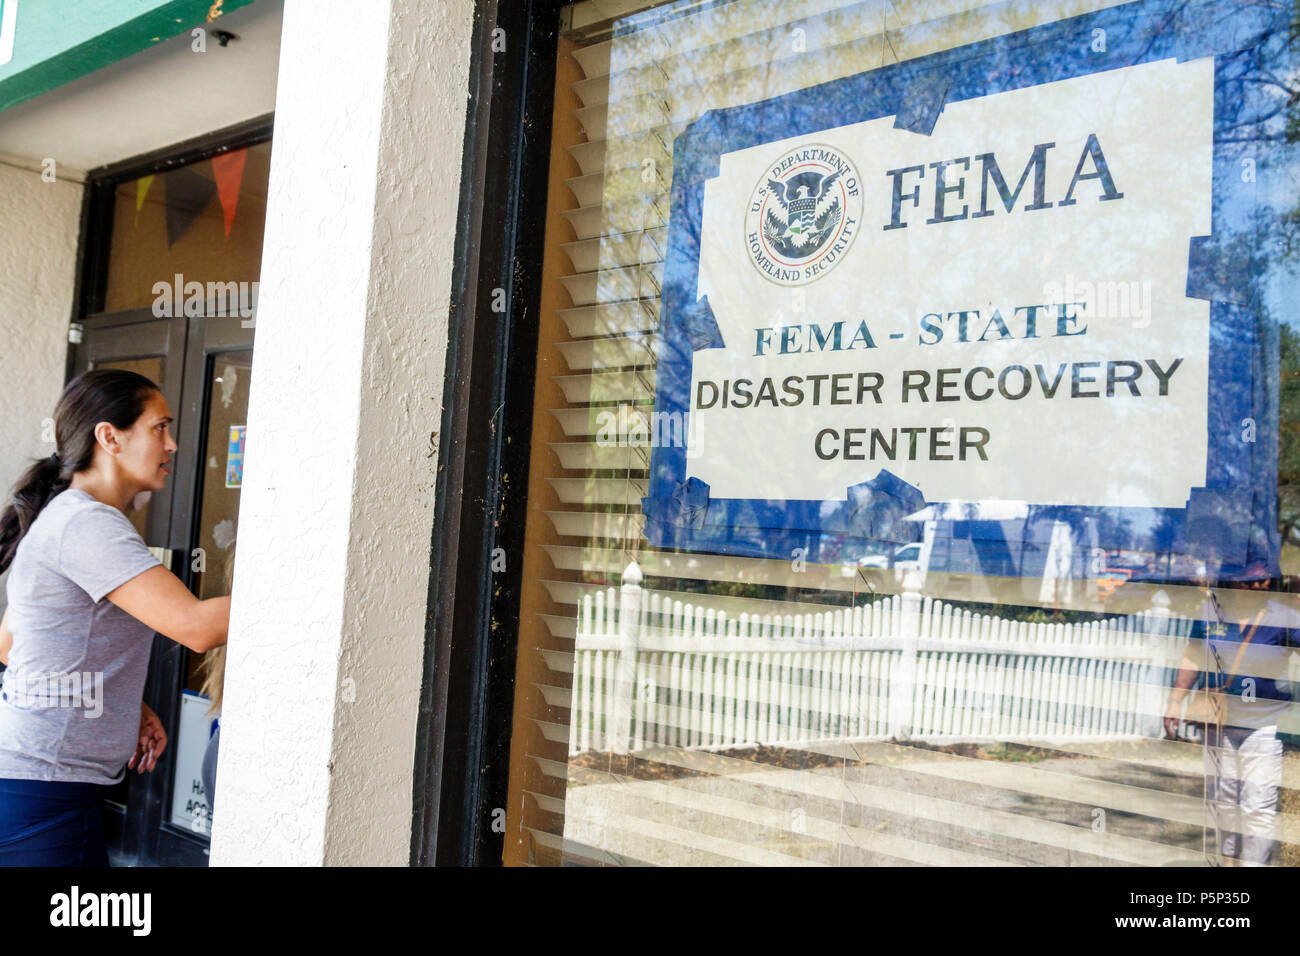 Immokalee Florida FEMA State Disaster Recovery Center centre storm assistance relief sign door Hispanic woman entering - Stock Image